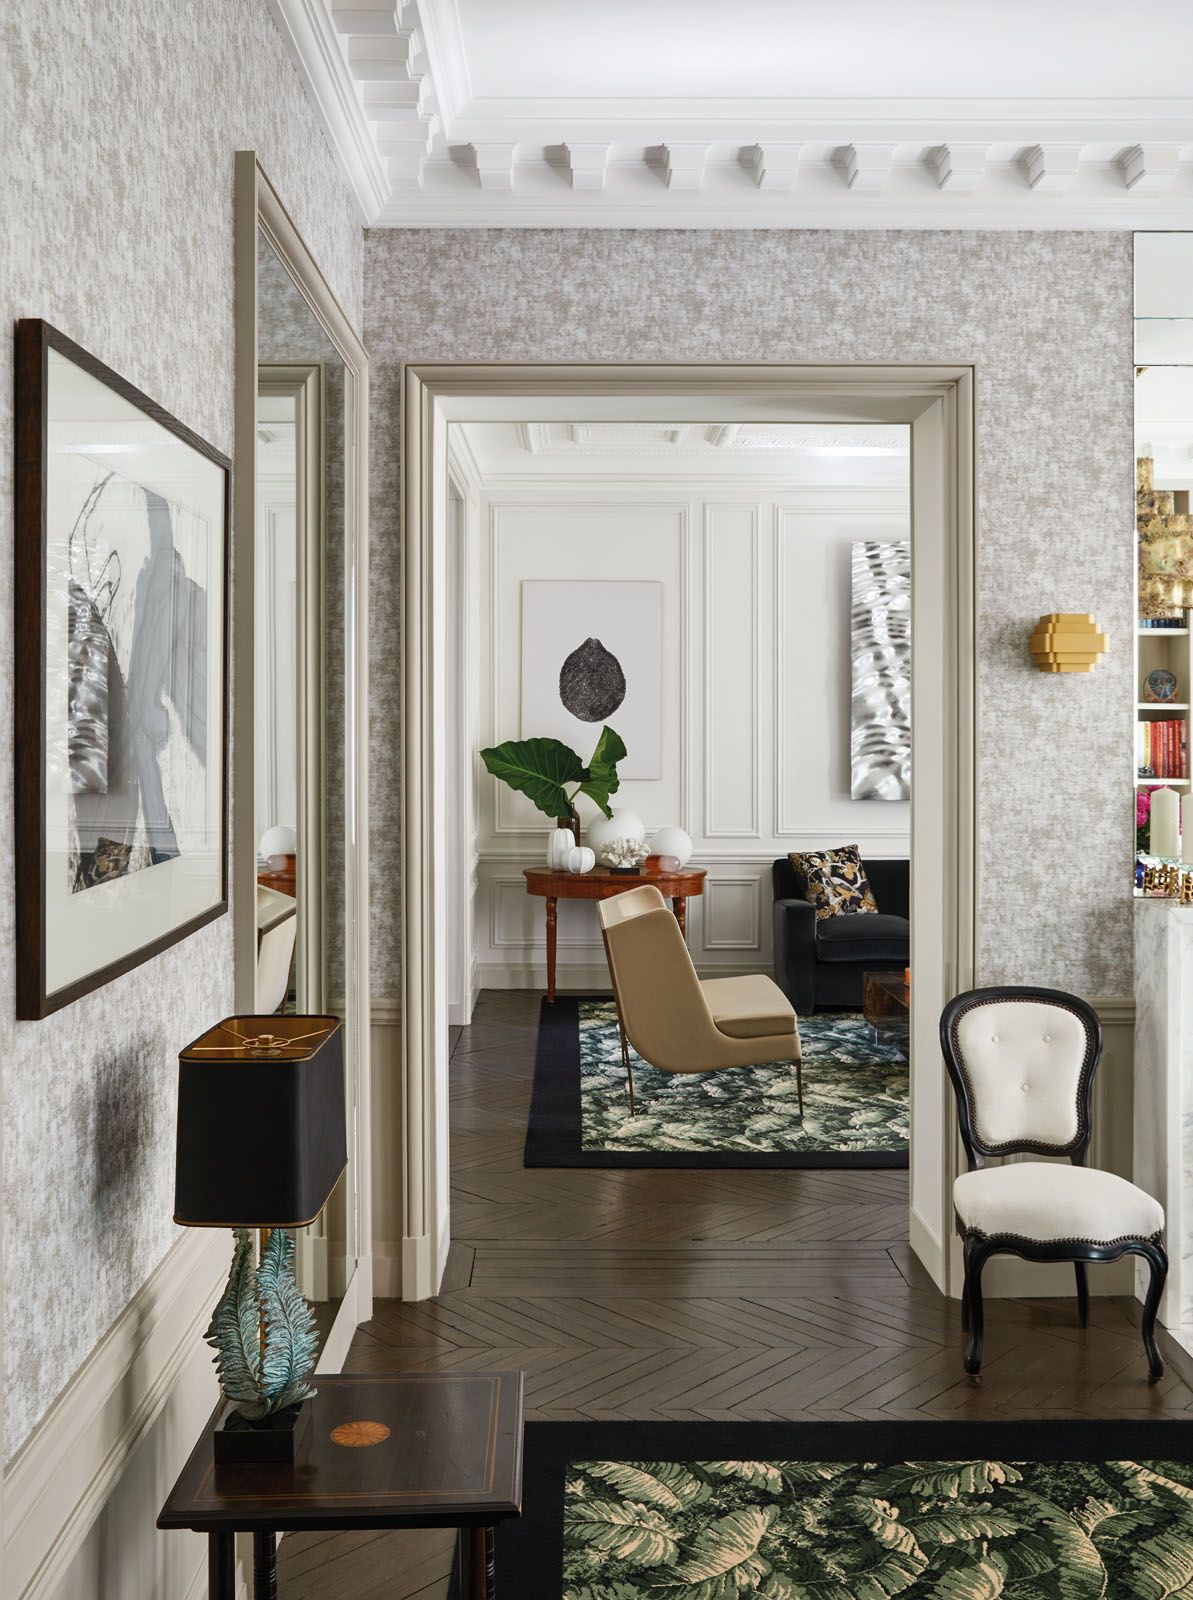 champeau and wilde Champeau and Wilde Create Bring Modern Design To This Paris Apartment Champeau and Wilde Create Bring Modern Design To This Paris Apartment 2